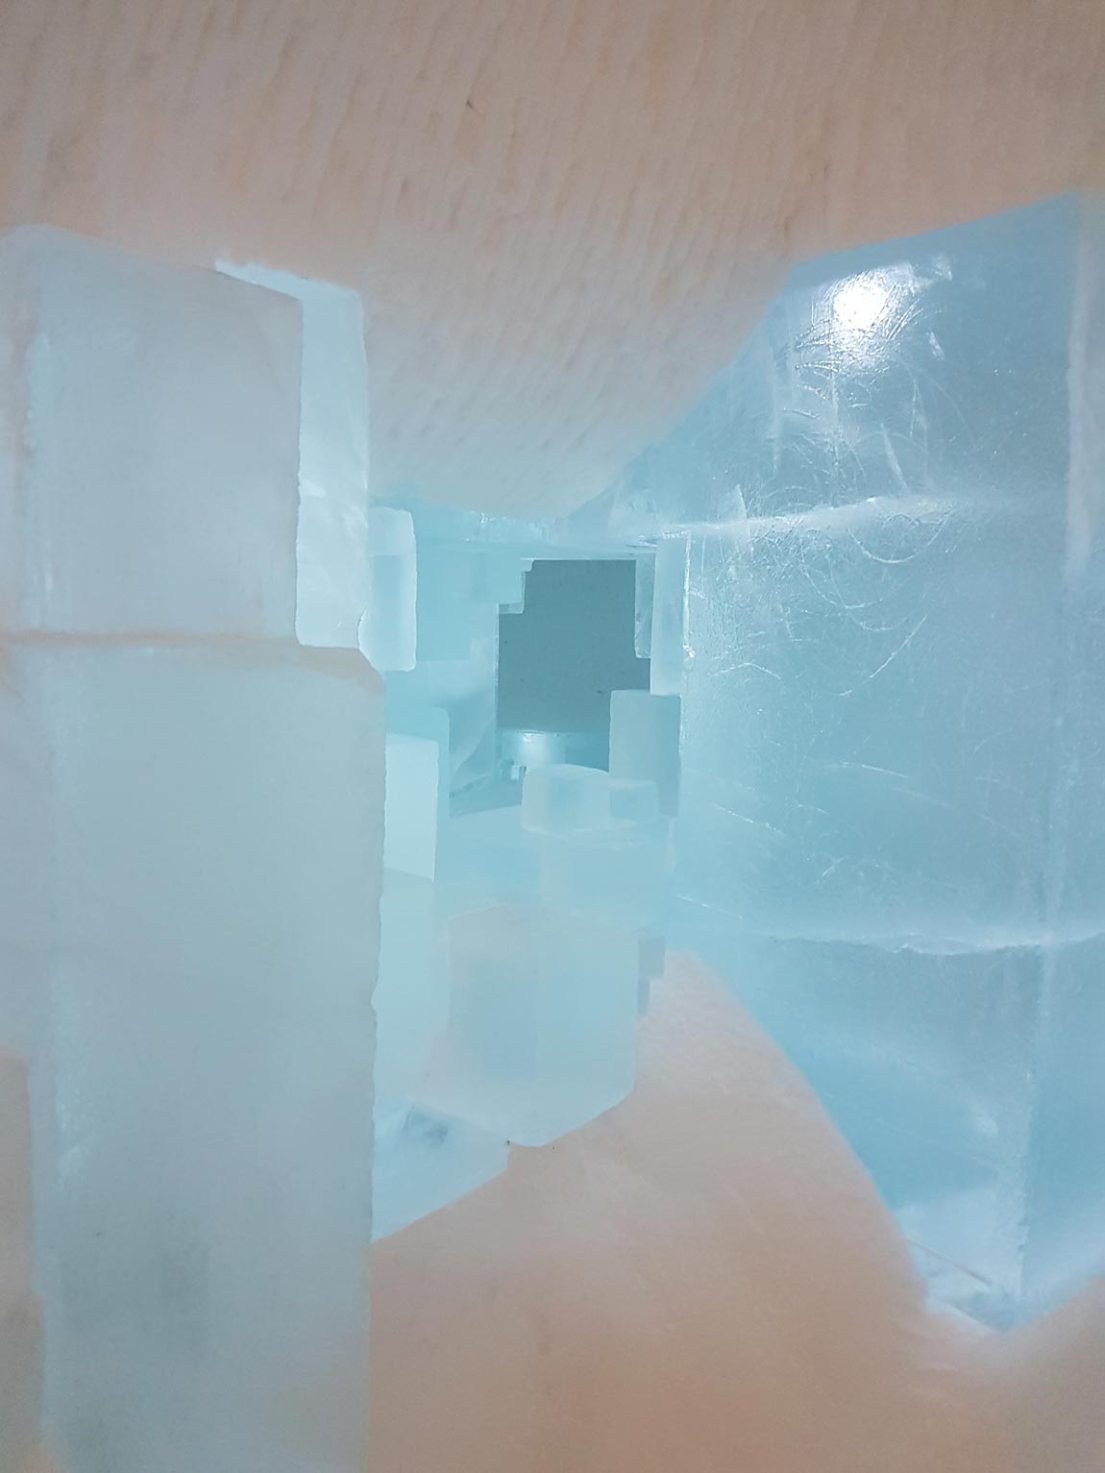 These ice blocked were cut and carved using a chain saw, which often broke in the sub zero temperatures.